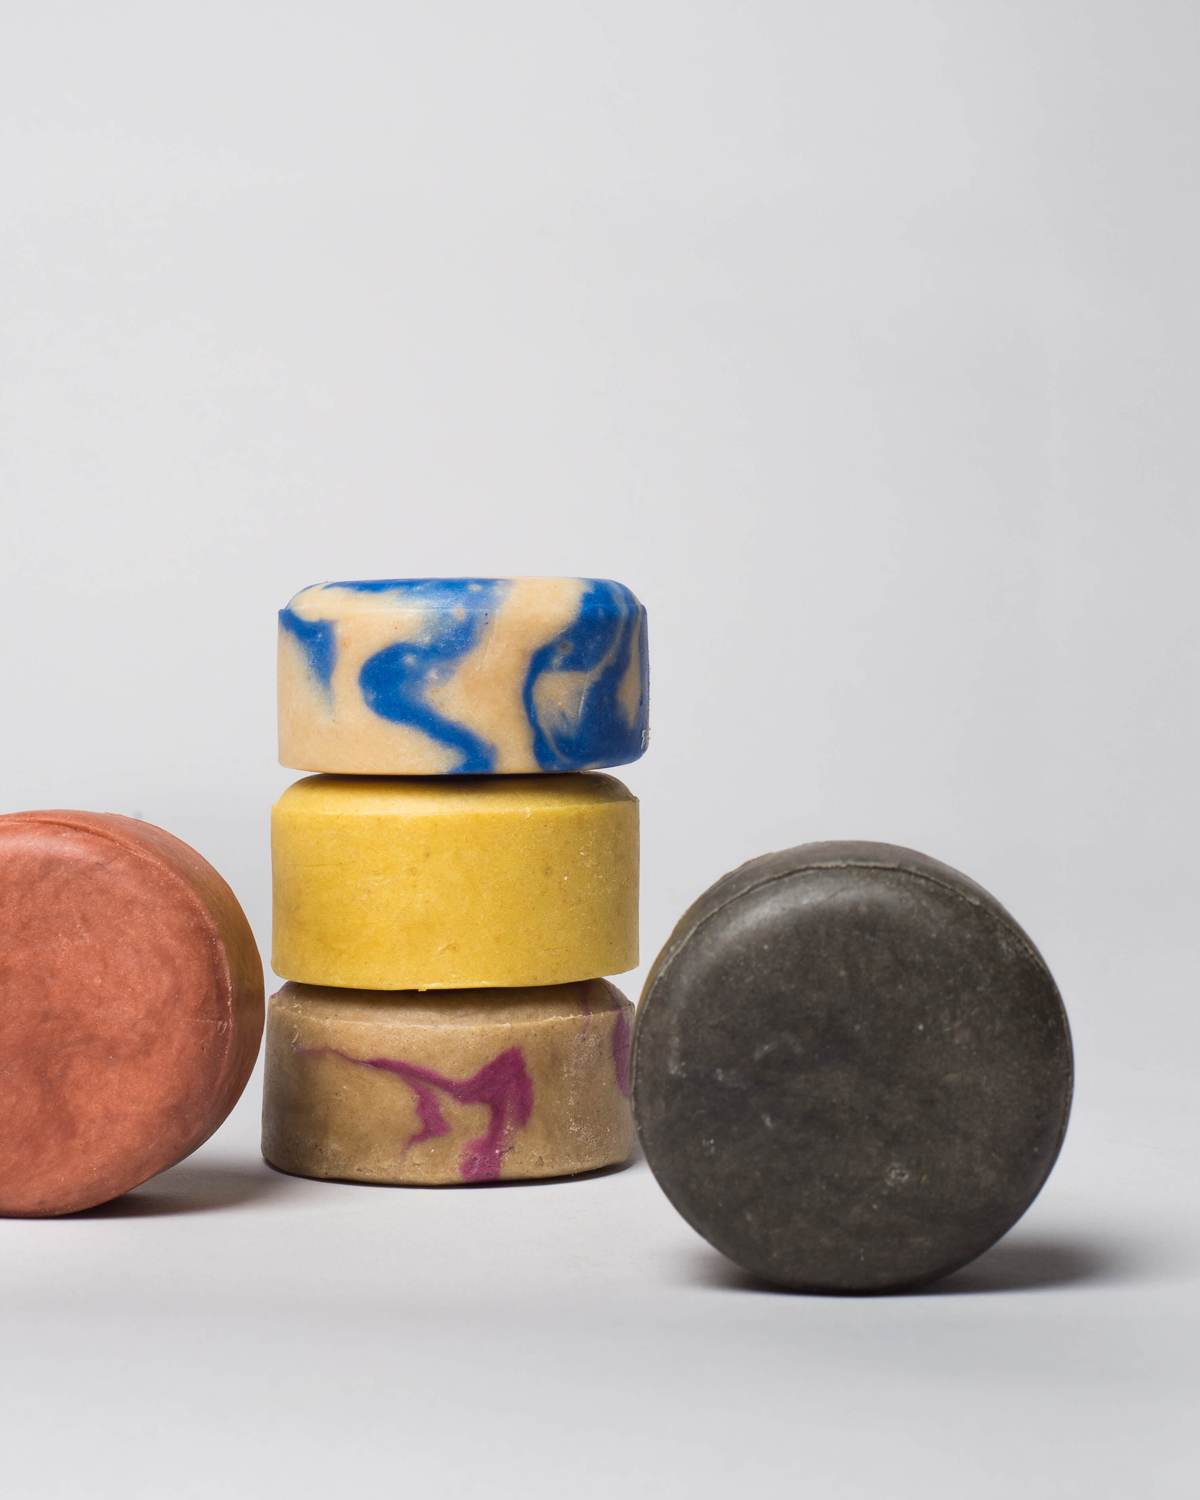 Handmade solid shampoo bar, made in Portugal and sold by wetheknot